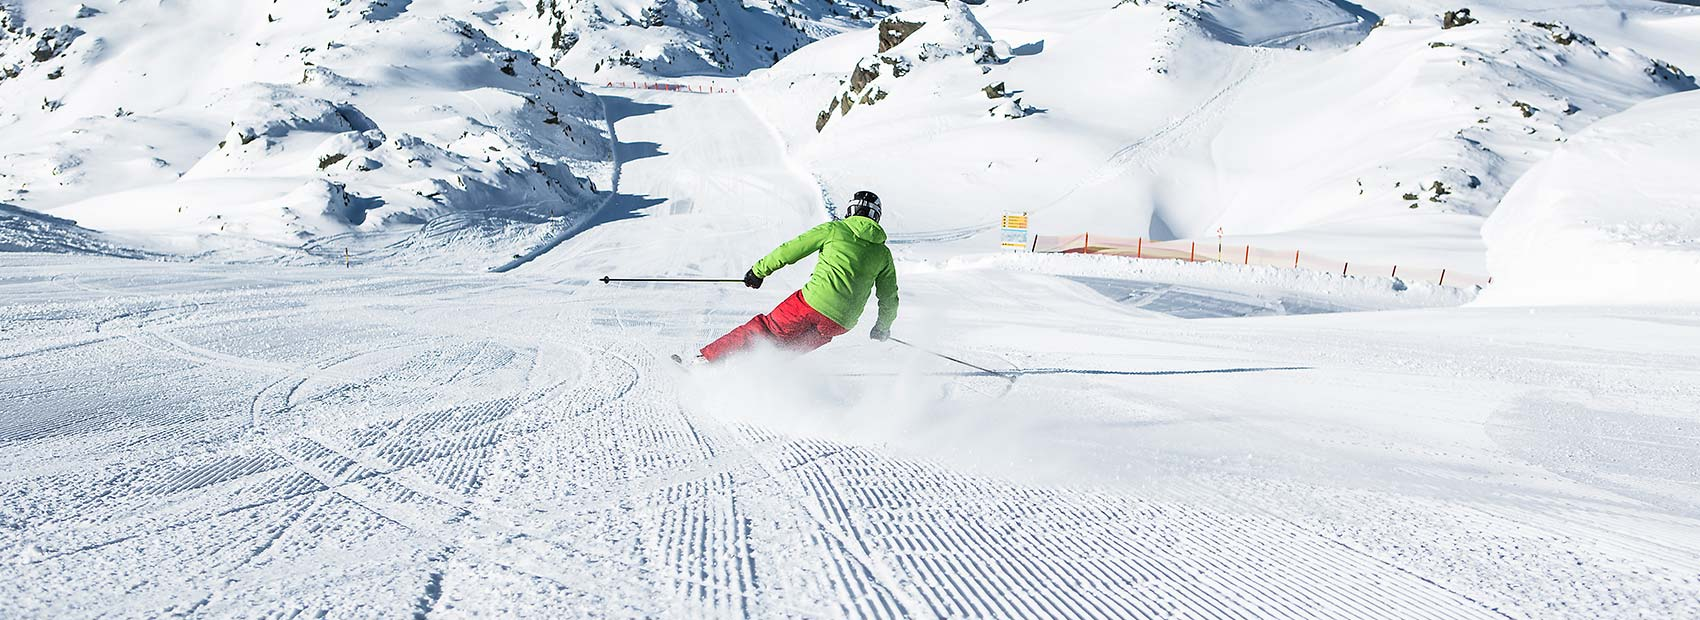 Best prepared pistes in the Zillertal Arena